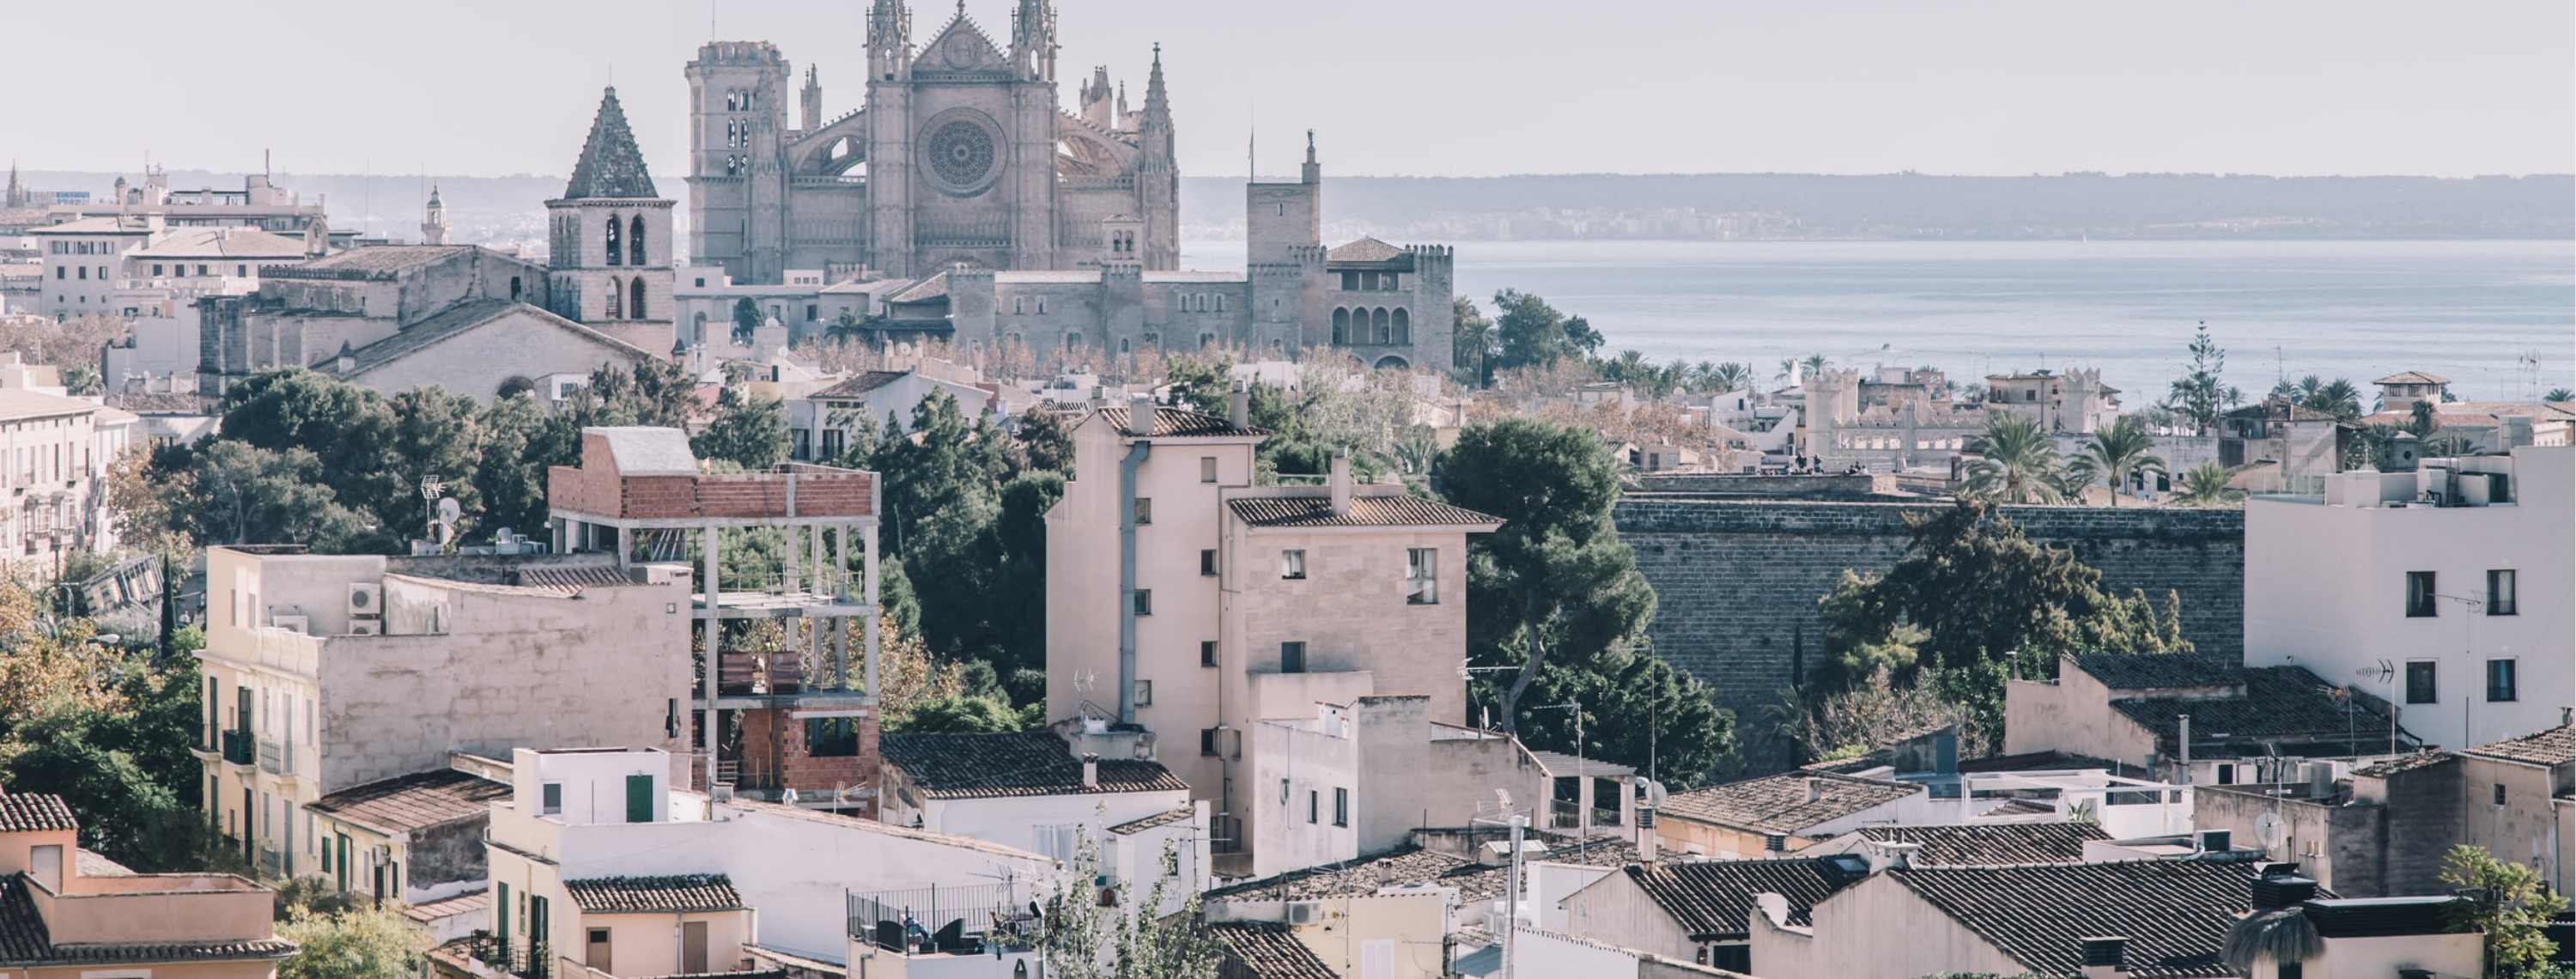 Fantastic Frank buying guide palma de mallorca